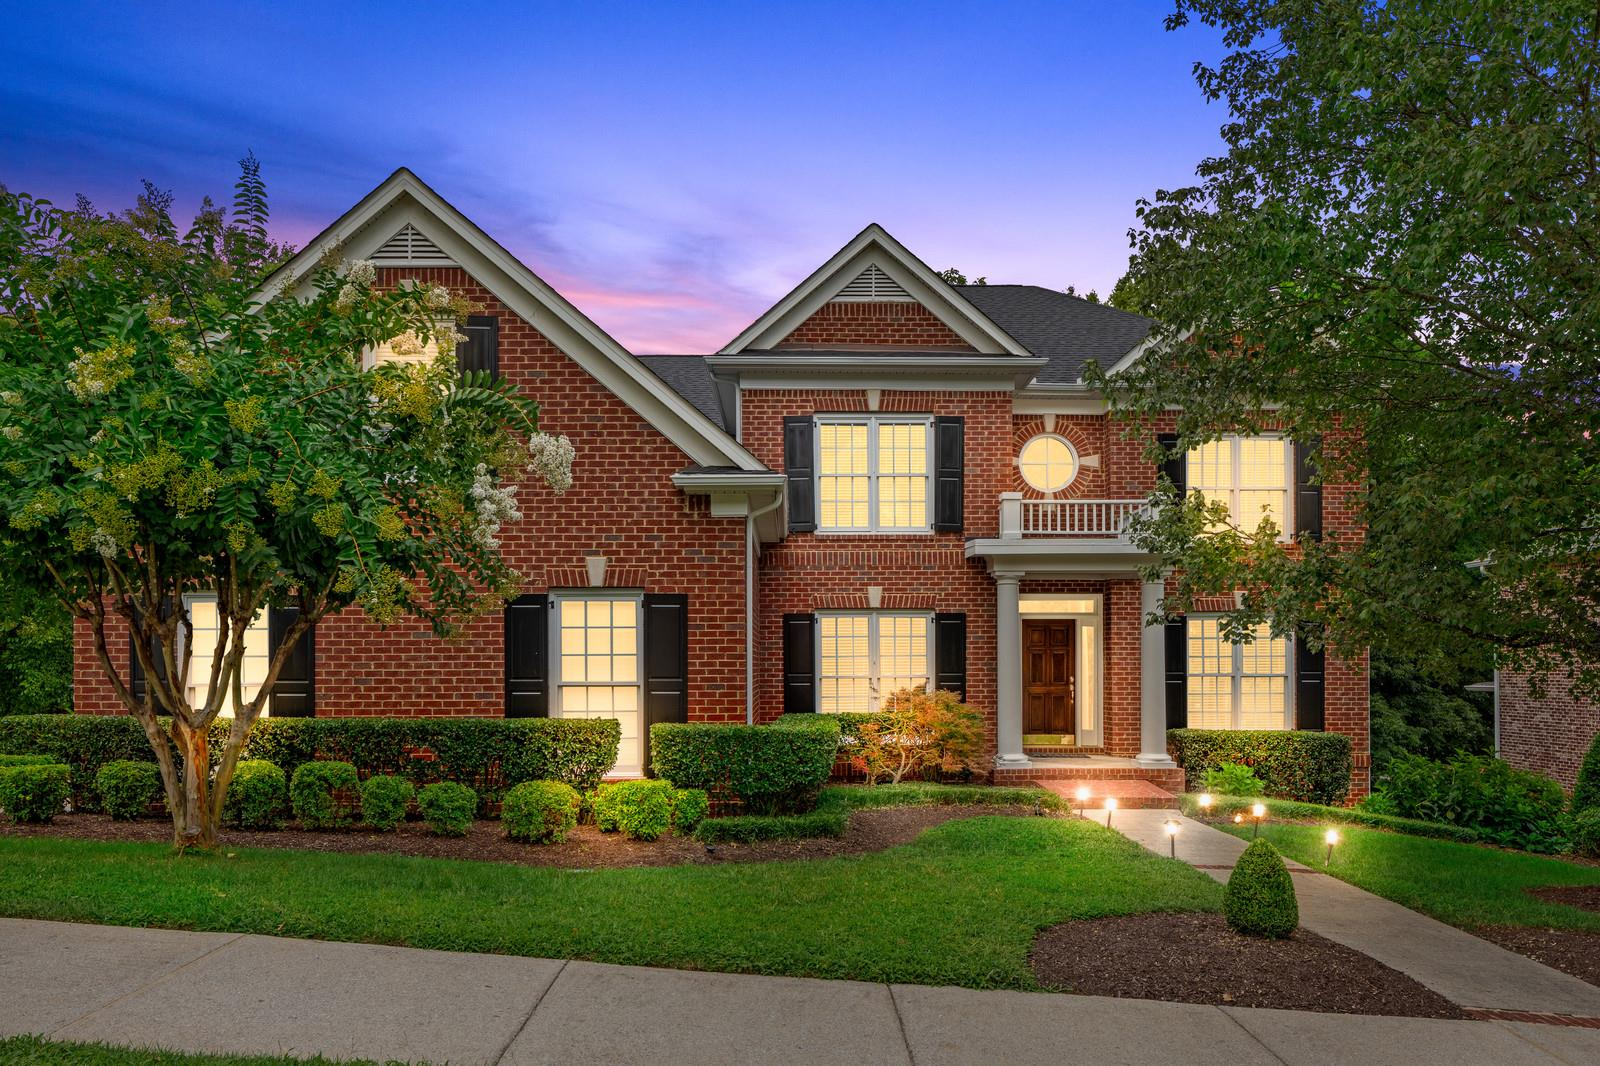 144 Allenhurst Cir, Franklin, TN 37067 - Franklin, TN real estate listing